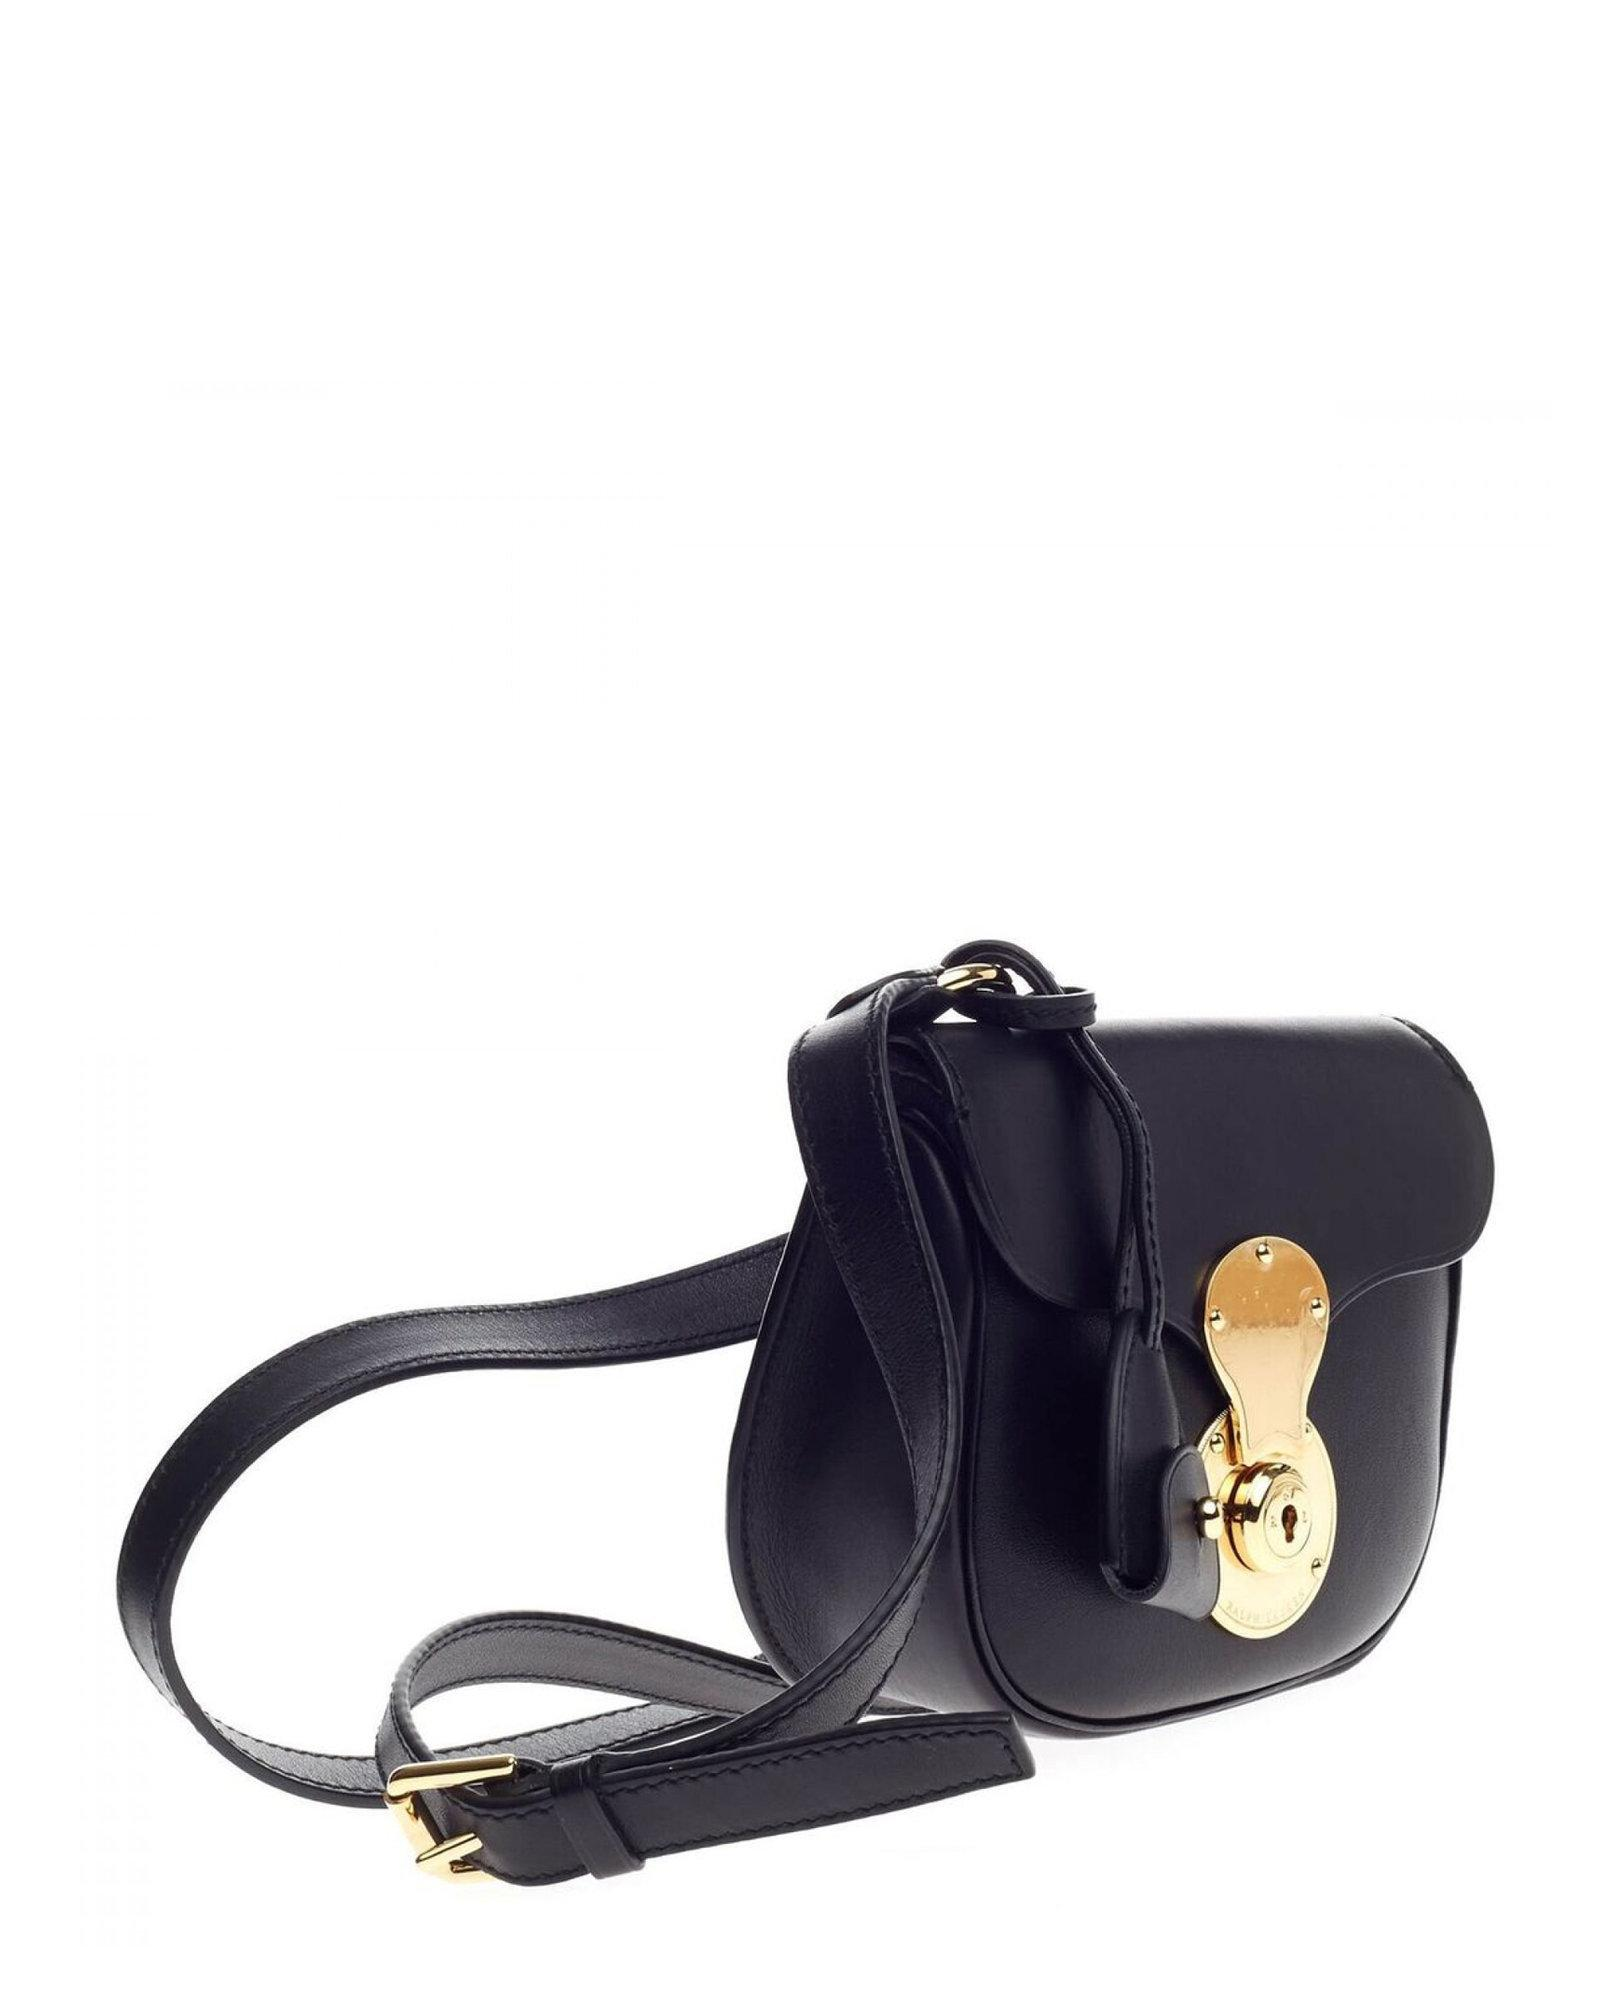 638268537d4c View fullscreen reputable site  Lyst - Ralph Lauren Ricky Crossbody -  Vintage in Black big sale b5dc5 a231f  Ralph Lauren Alligator Ricky Jewel  Satchel ...